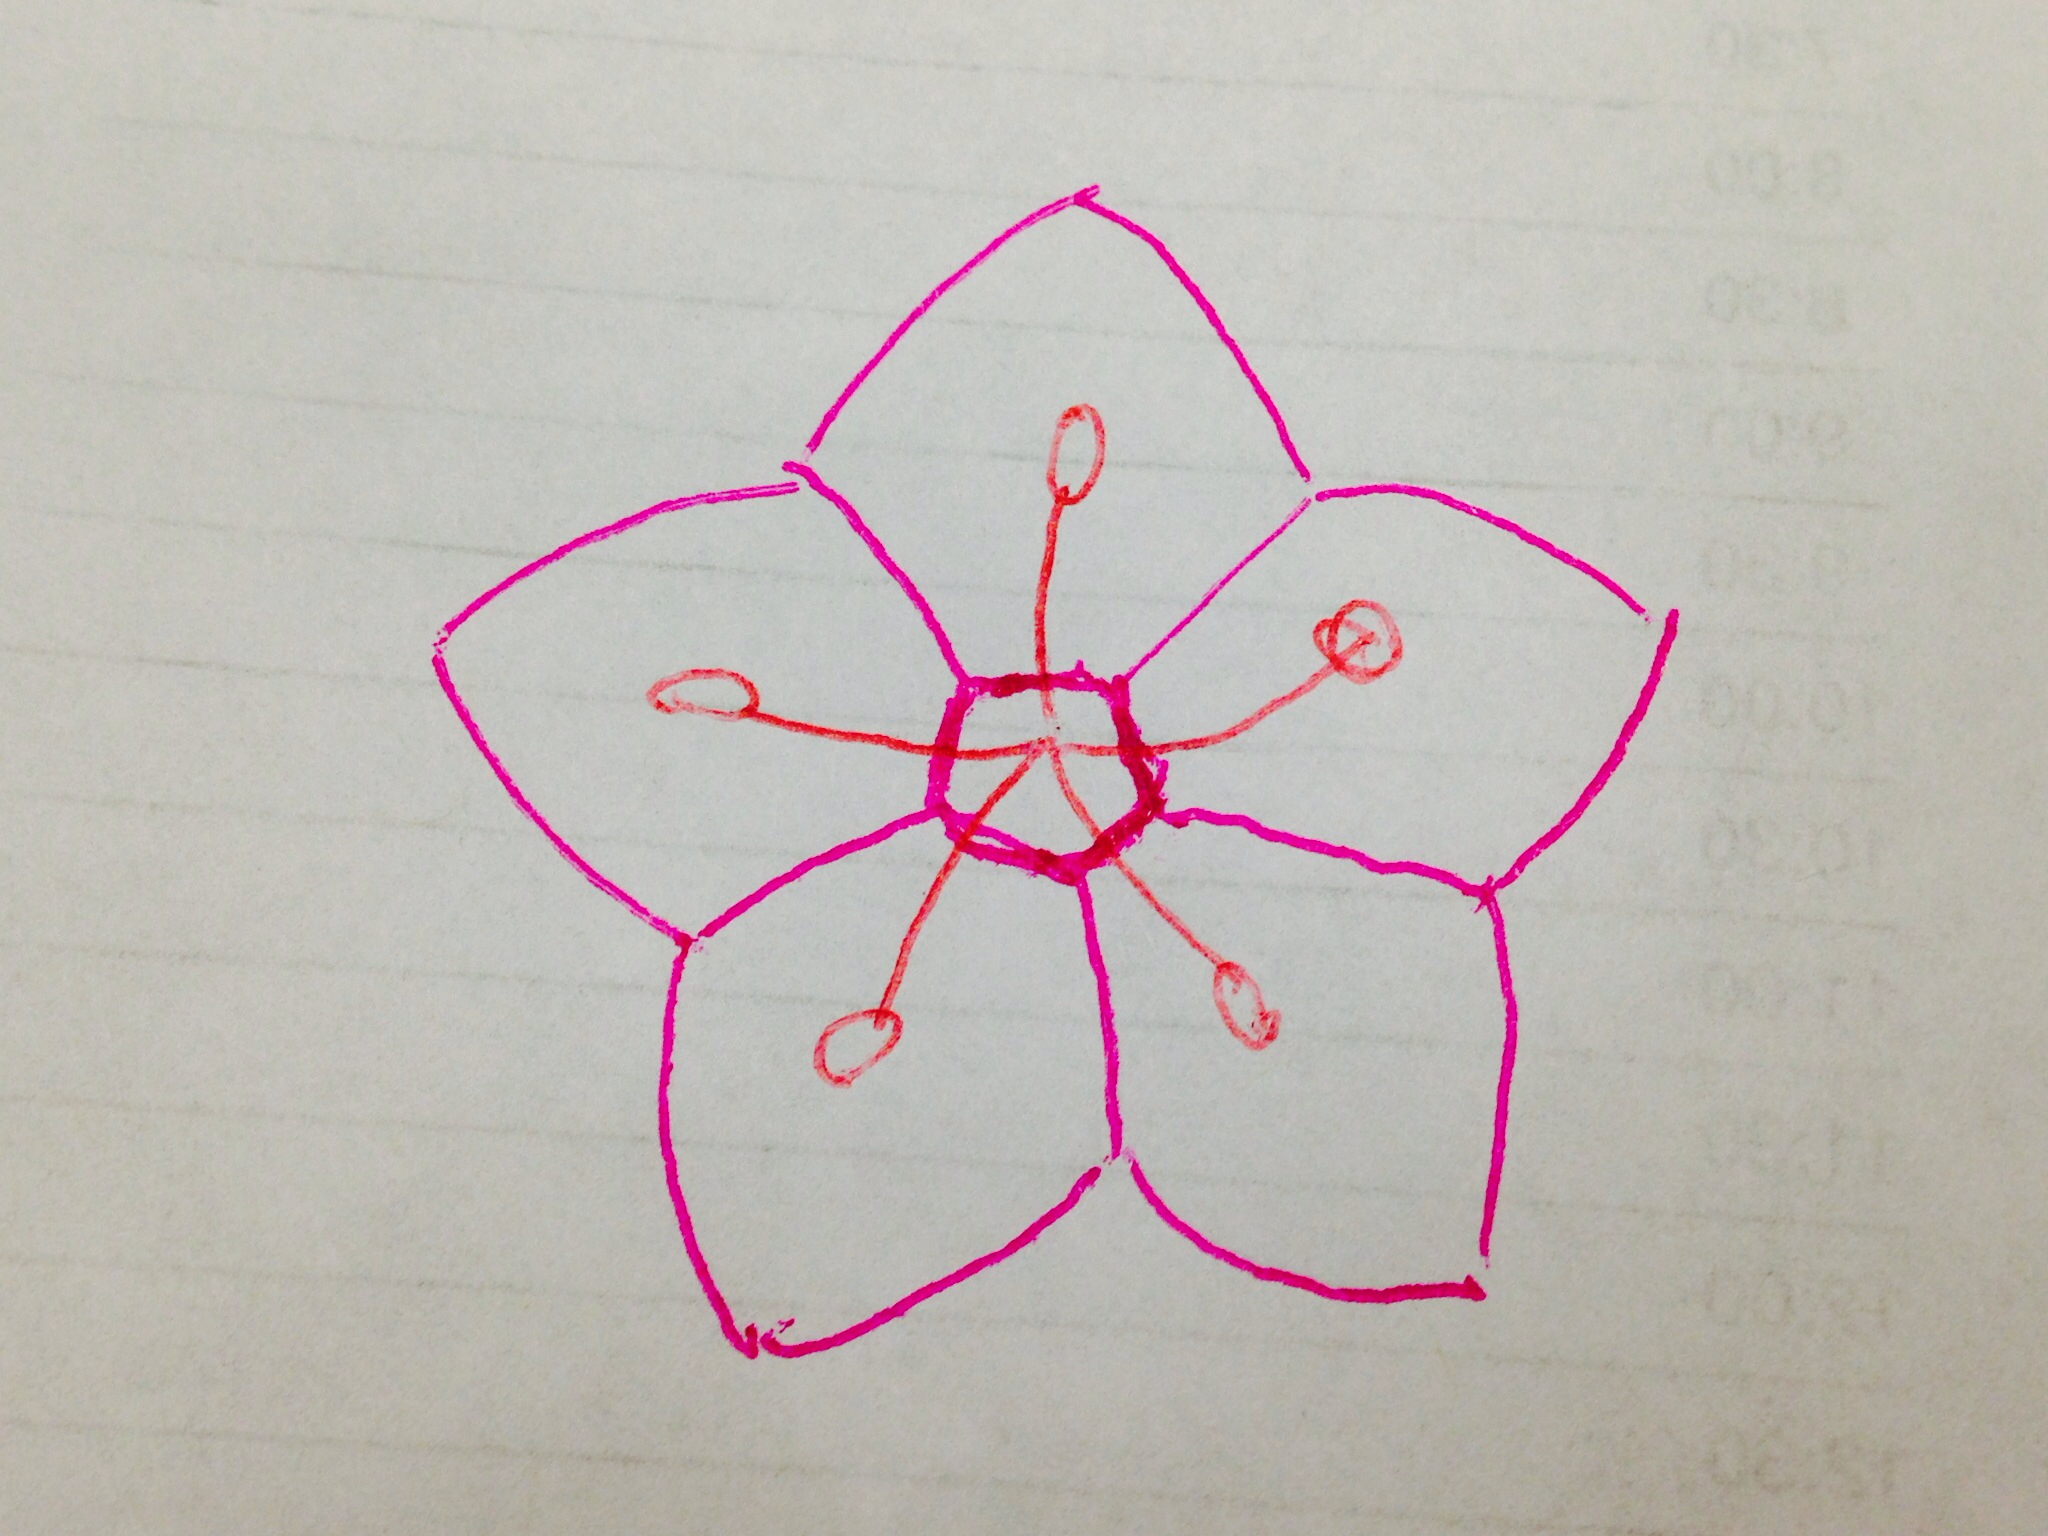 2048x1536 A Rough Drawing For My Personal Token. Mountain Laurel